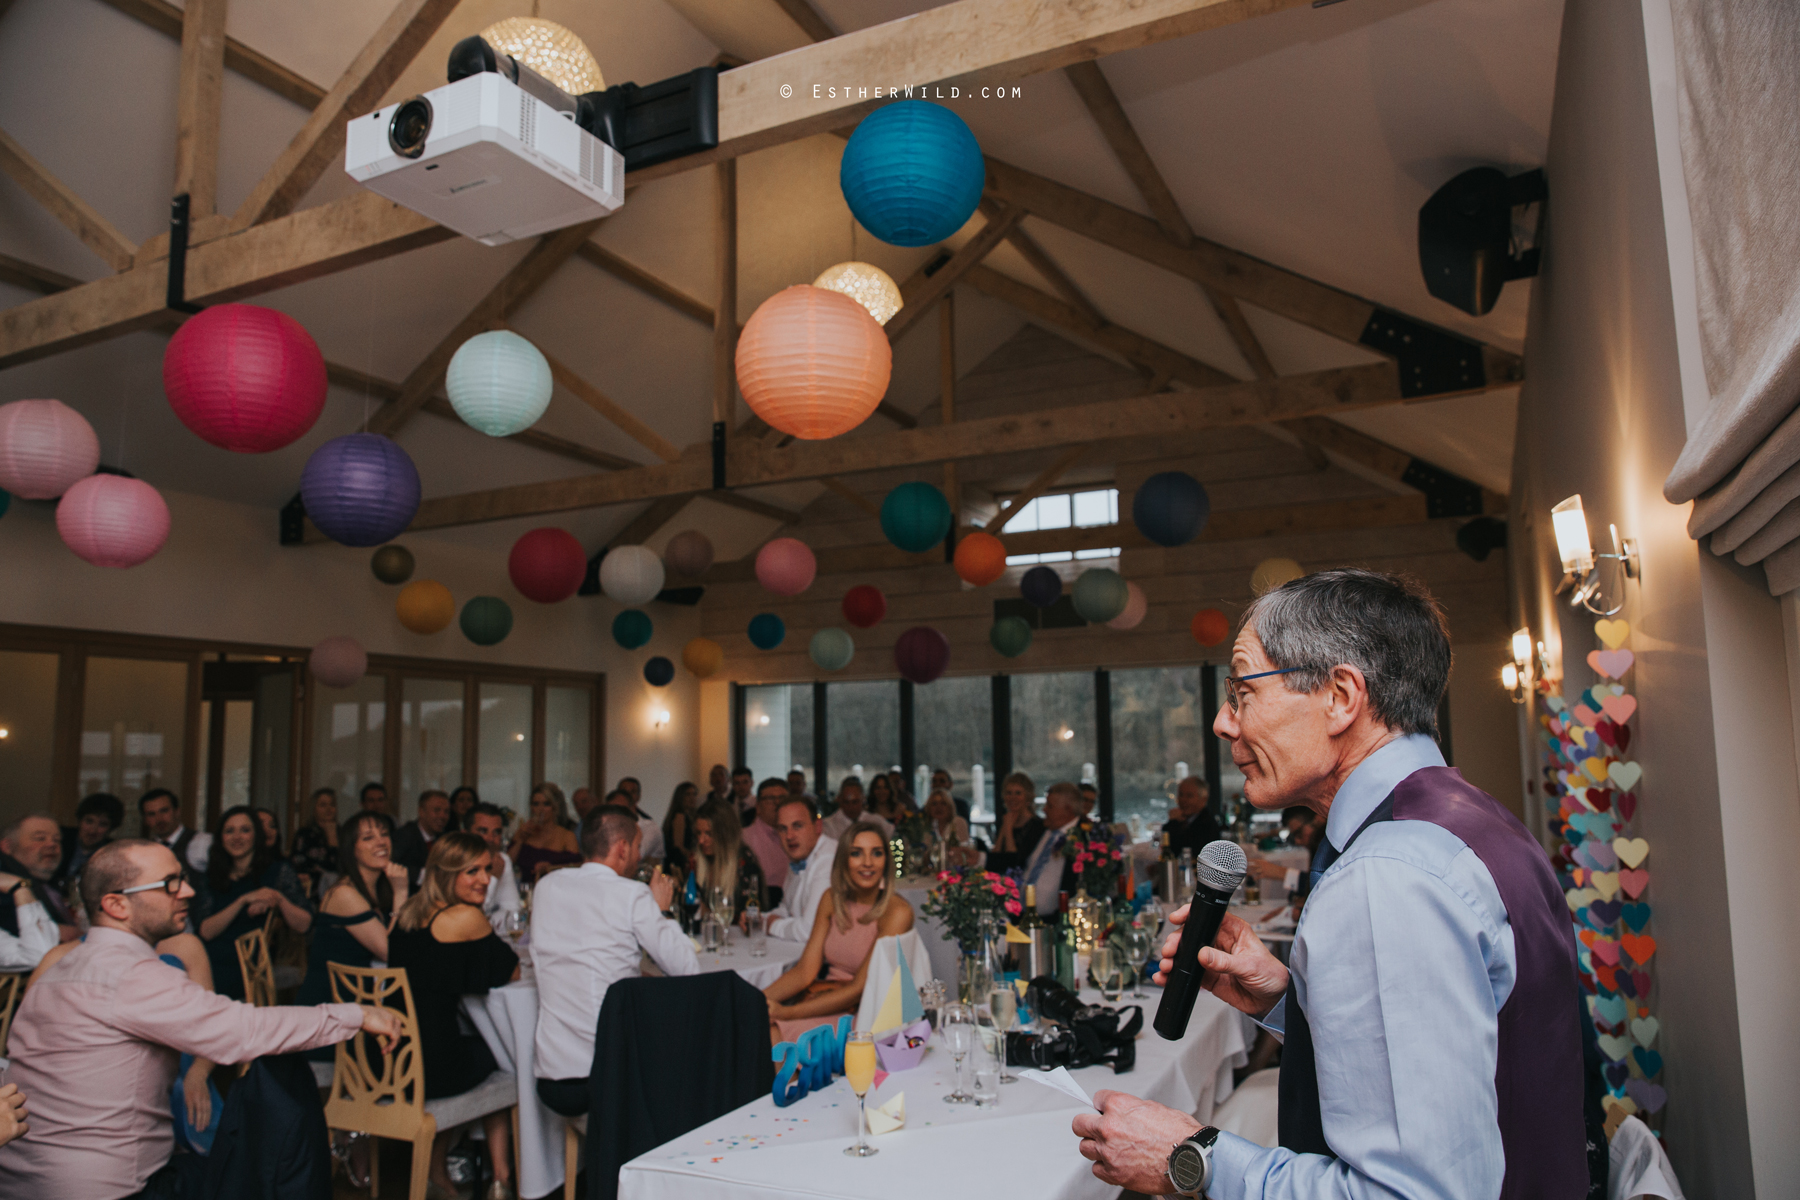 The_BoatHouse_Wedding_Venue_Ormesby_Norfolk_Broads_Boat_Wedding_Photography_Esther_Wild_Photographer_IMG_3049.jpg